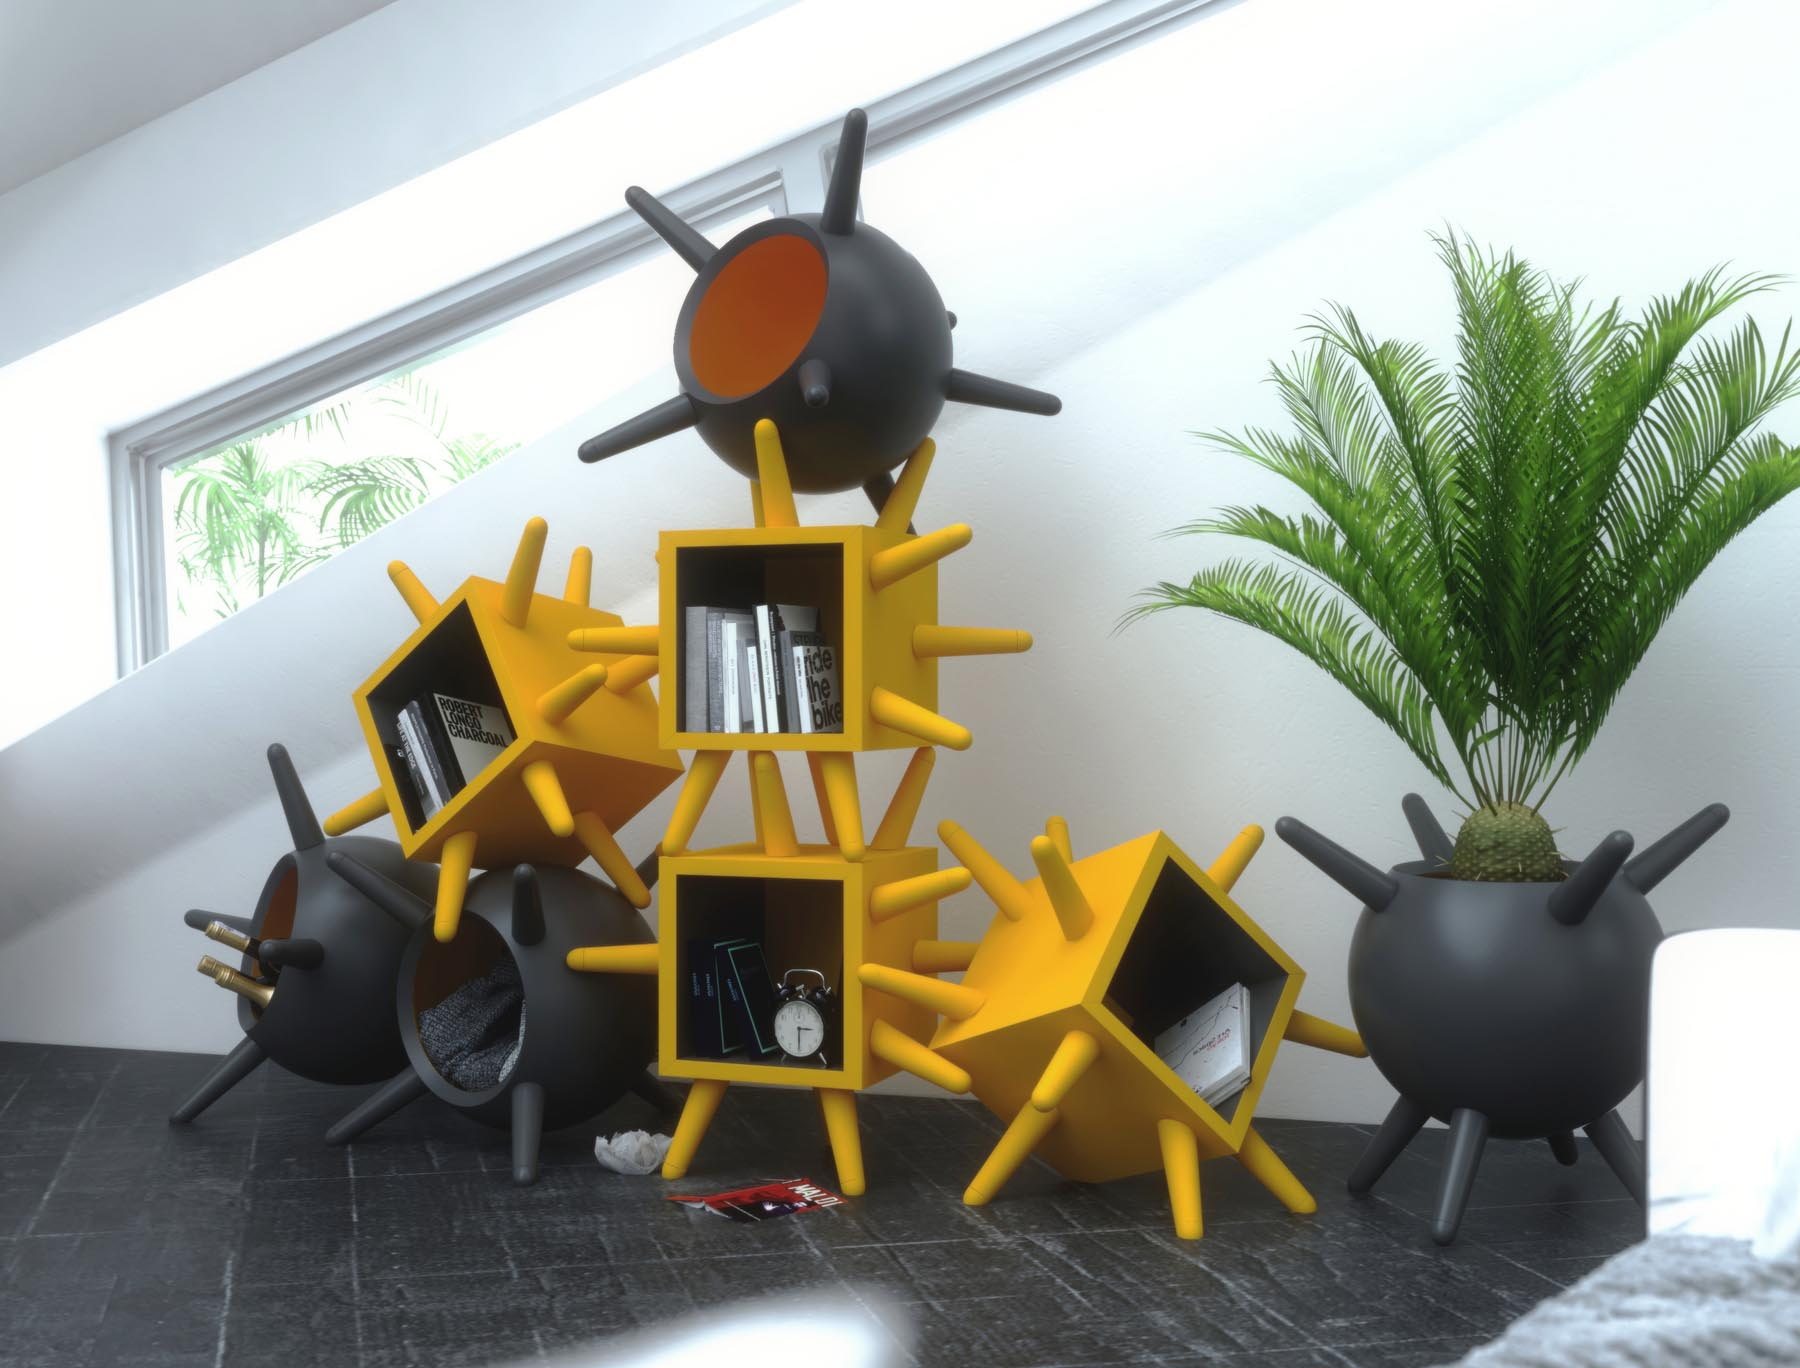 Unique multi-functional furniture can be used for storage, as a planter, or as a table base.